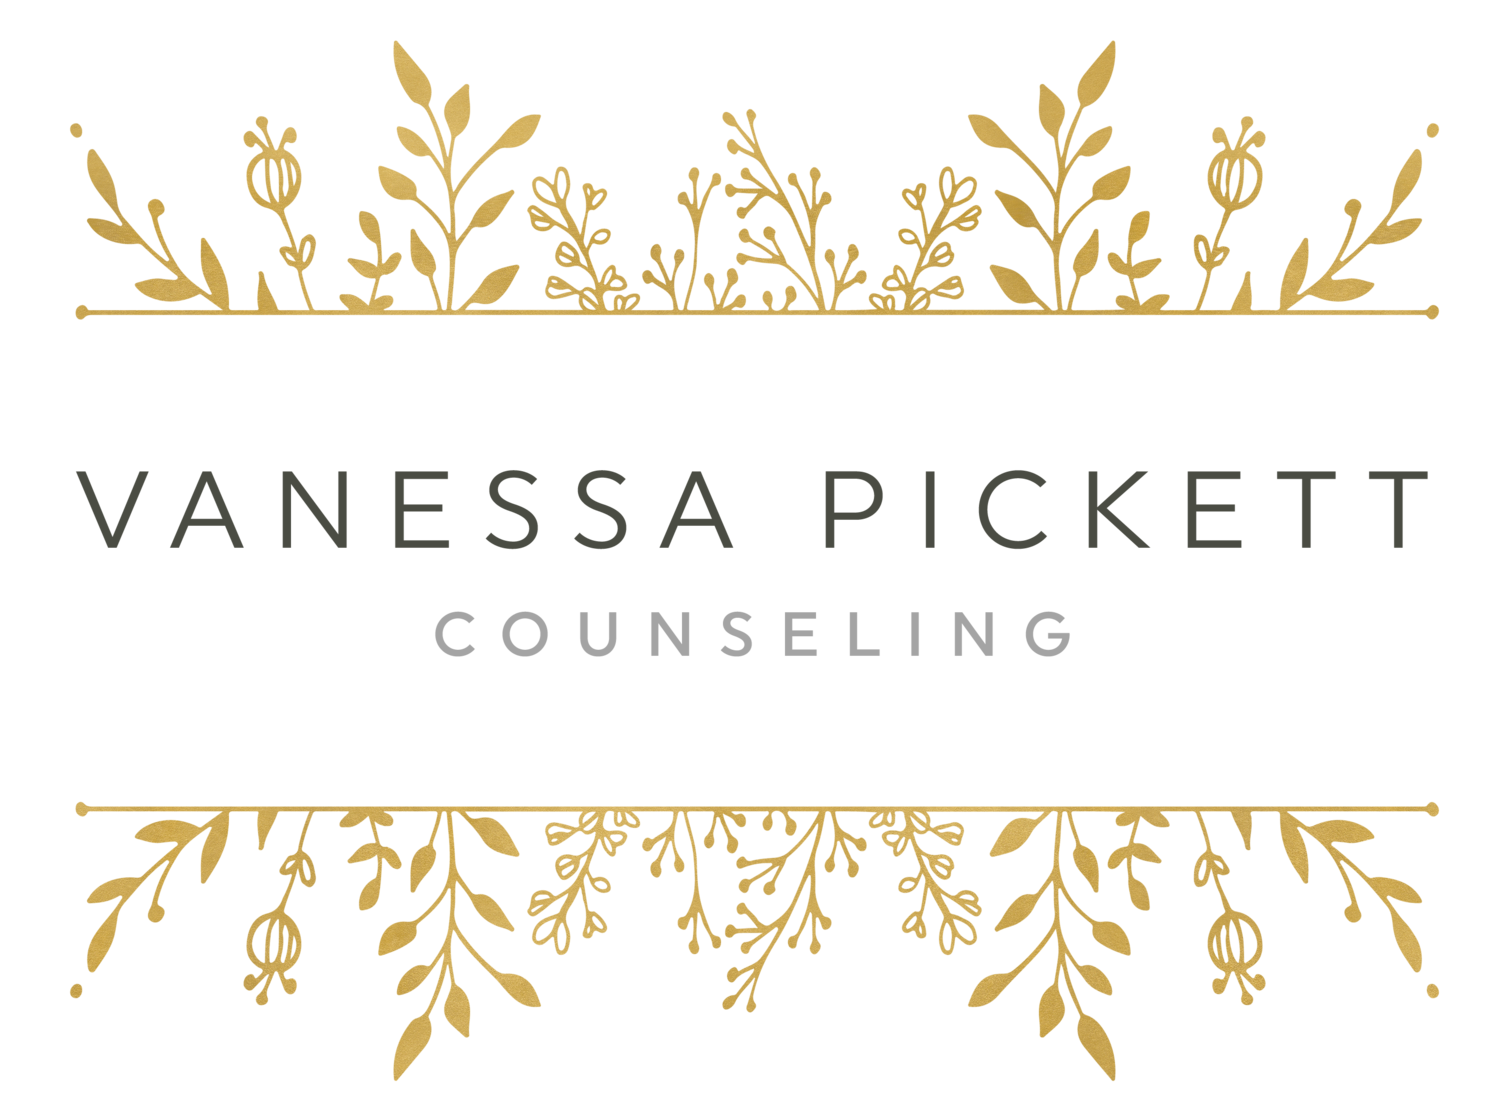 Vanessa Pickett Counseling